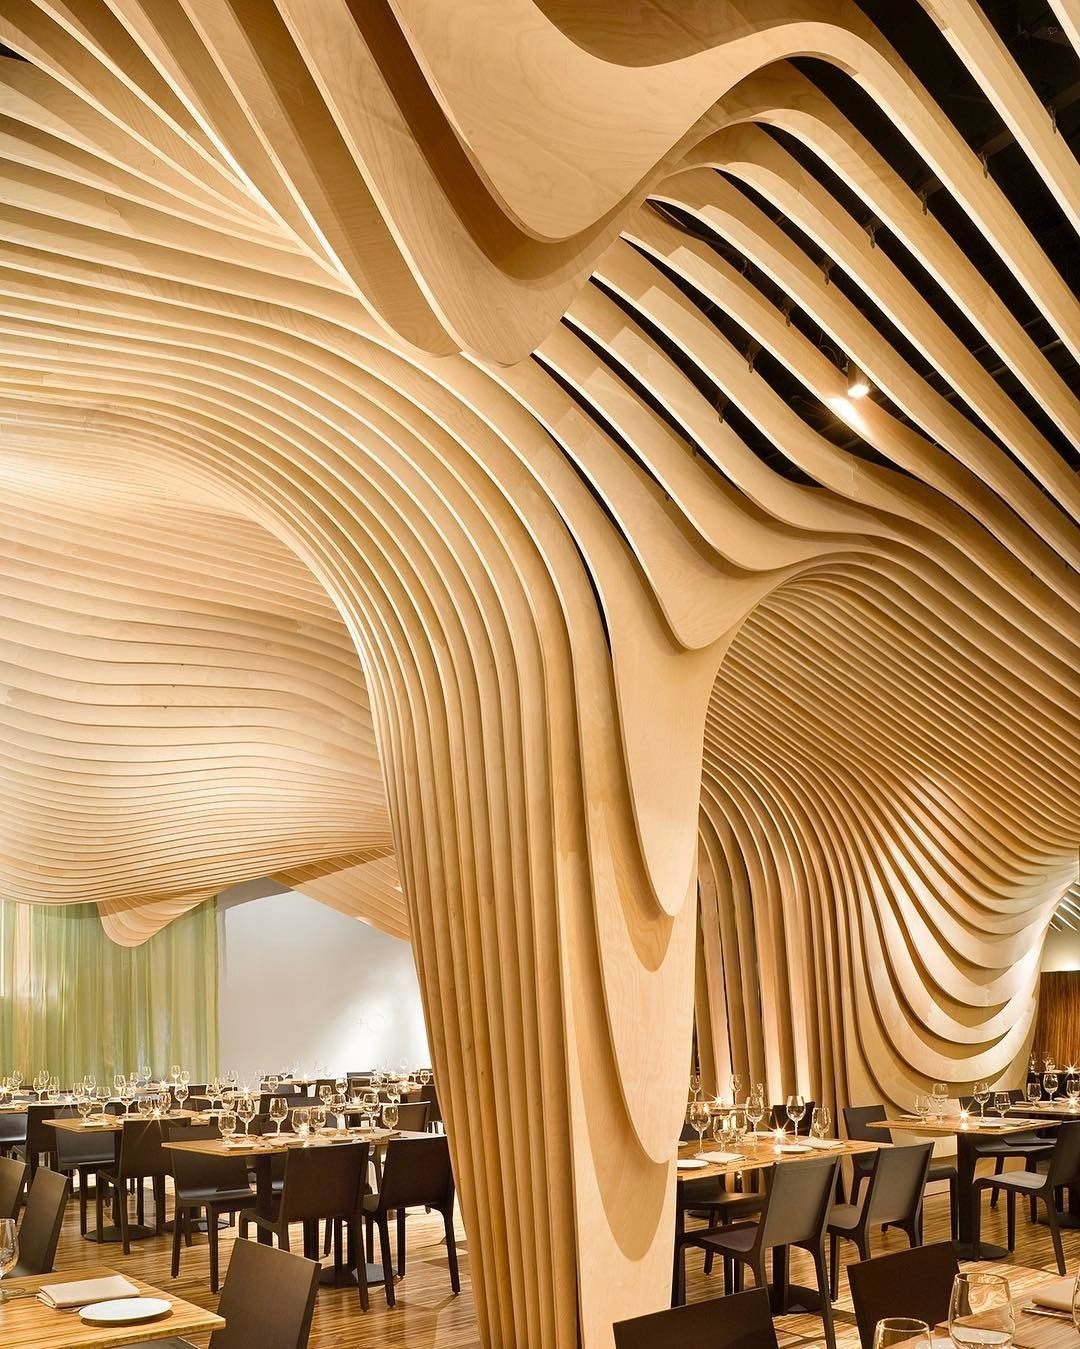 in a boston restaurant, @nadaaainc designed a canopy of fluid-like